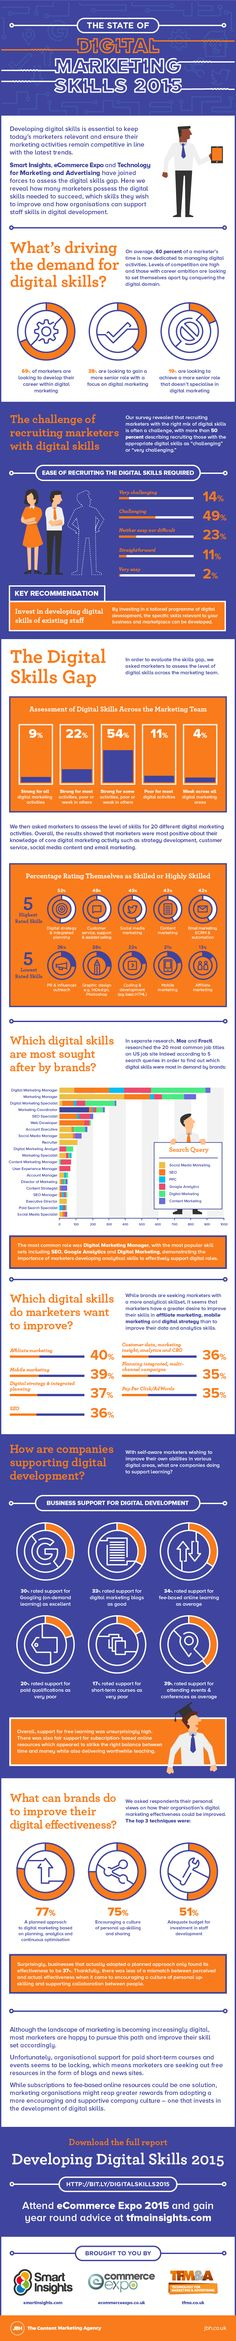 The State Of Digital Marketing Skills 2015 #infographic